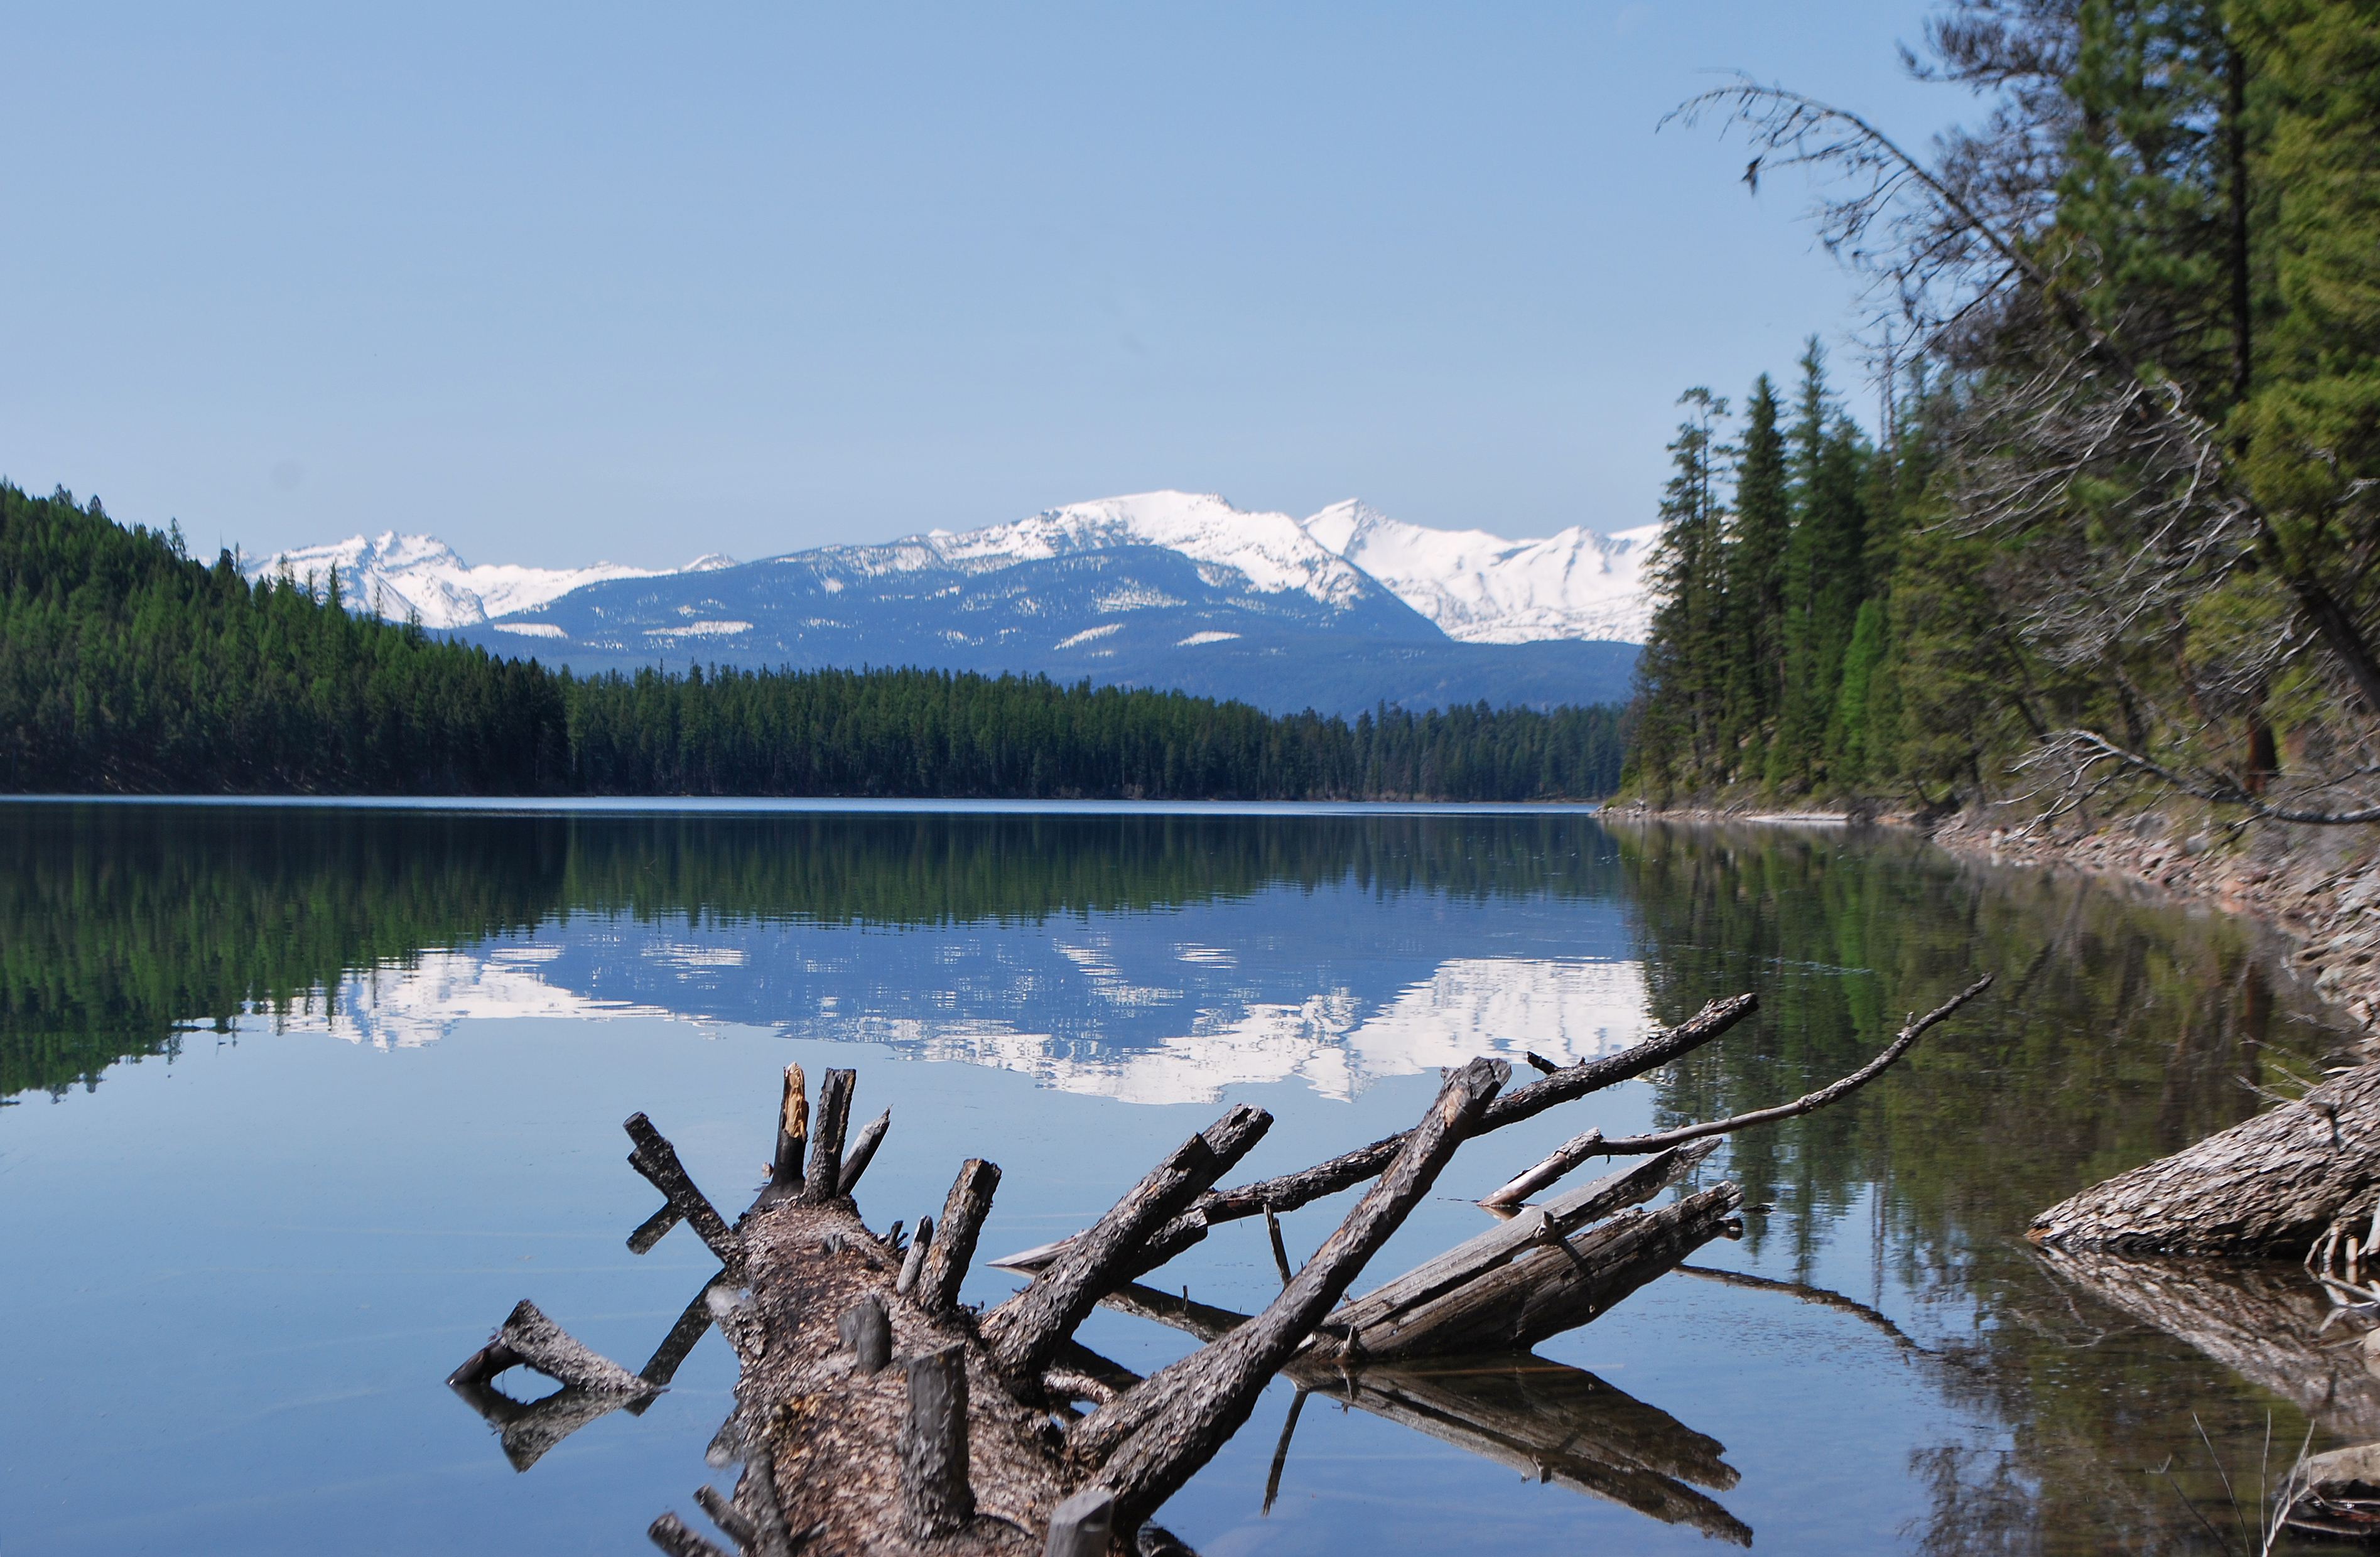 7 Little Known Swimming Spots In Montana